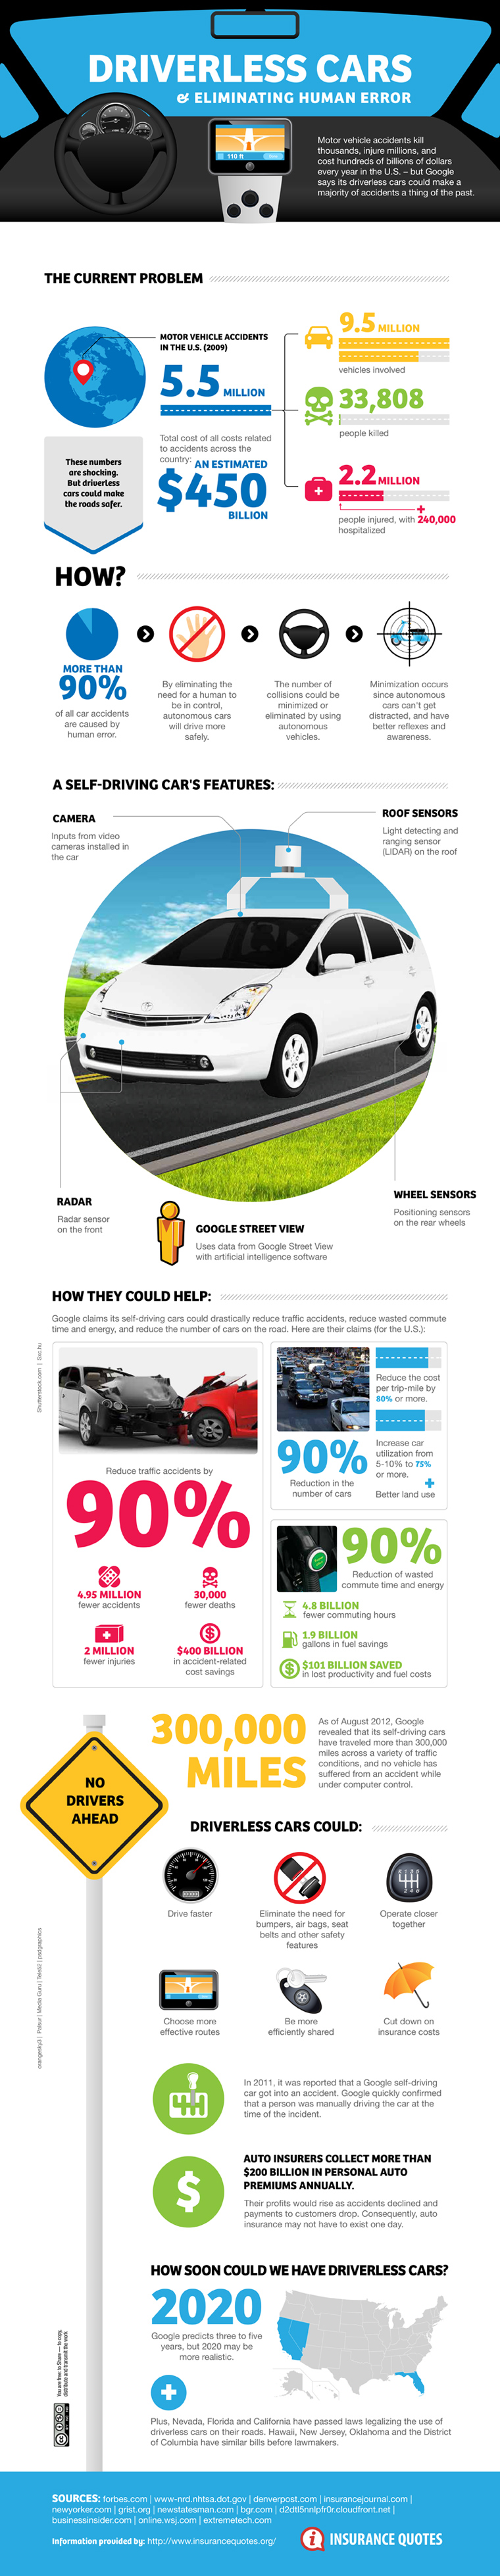 self-driving cars infographic